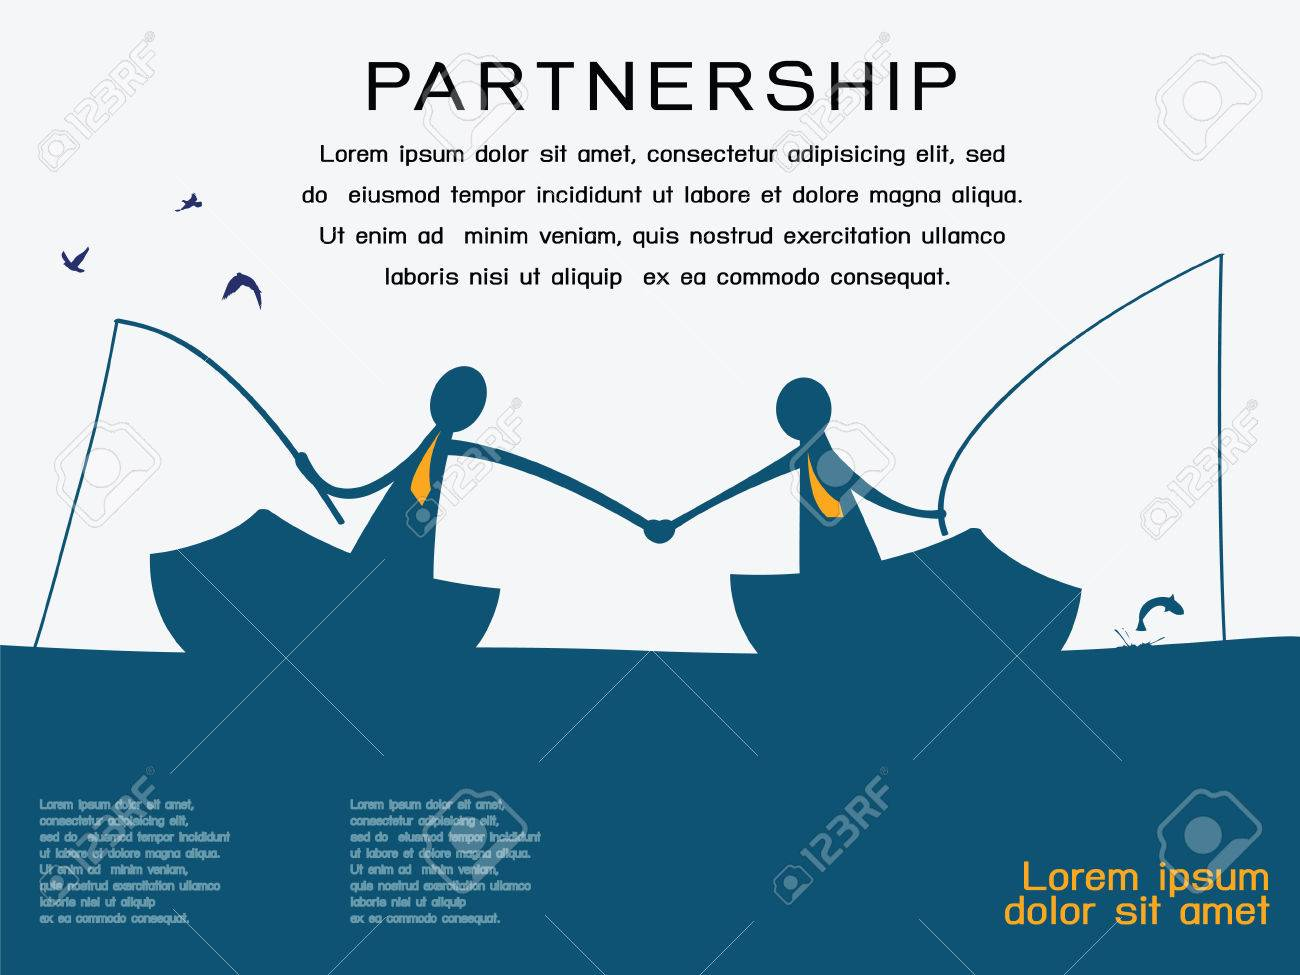 Business man on going fishing on the boat and shaking hands to each other in partnership and corporation concept  Abstract background with copy space and text for your own design Stock Vector - 24678892